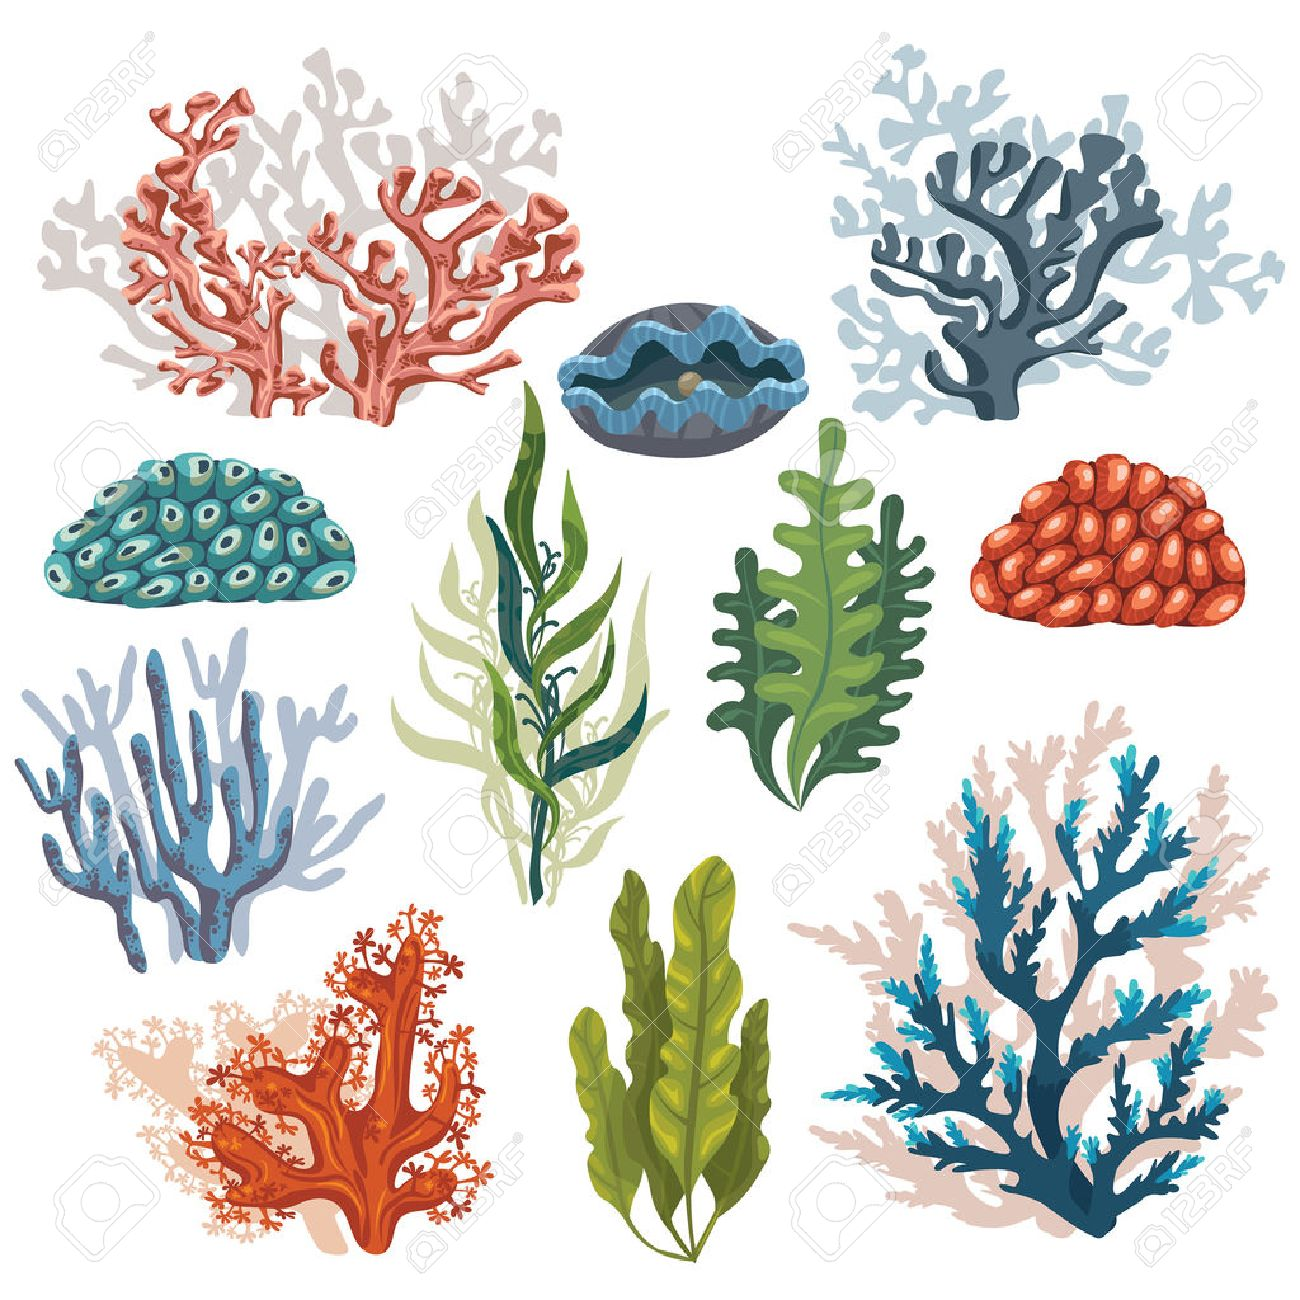 Set Of Cartoon Underwater Plants And Creatures Vector Isolated